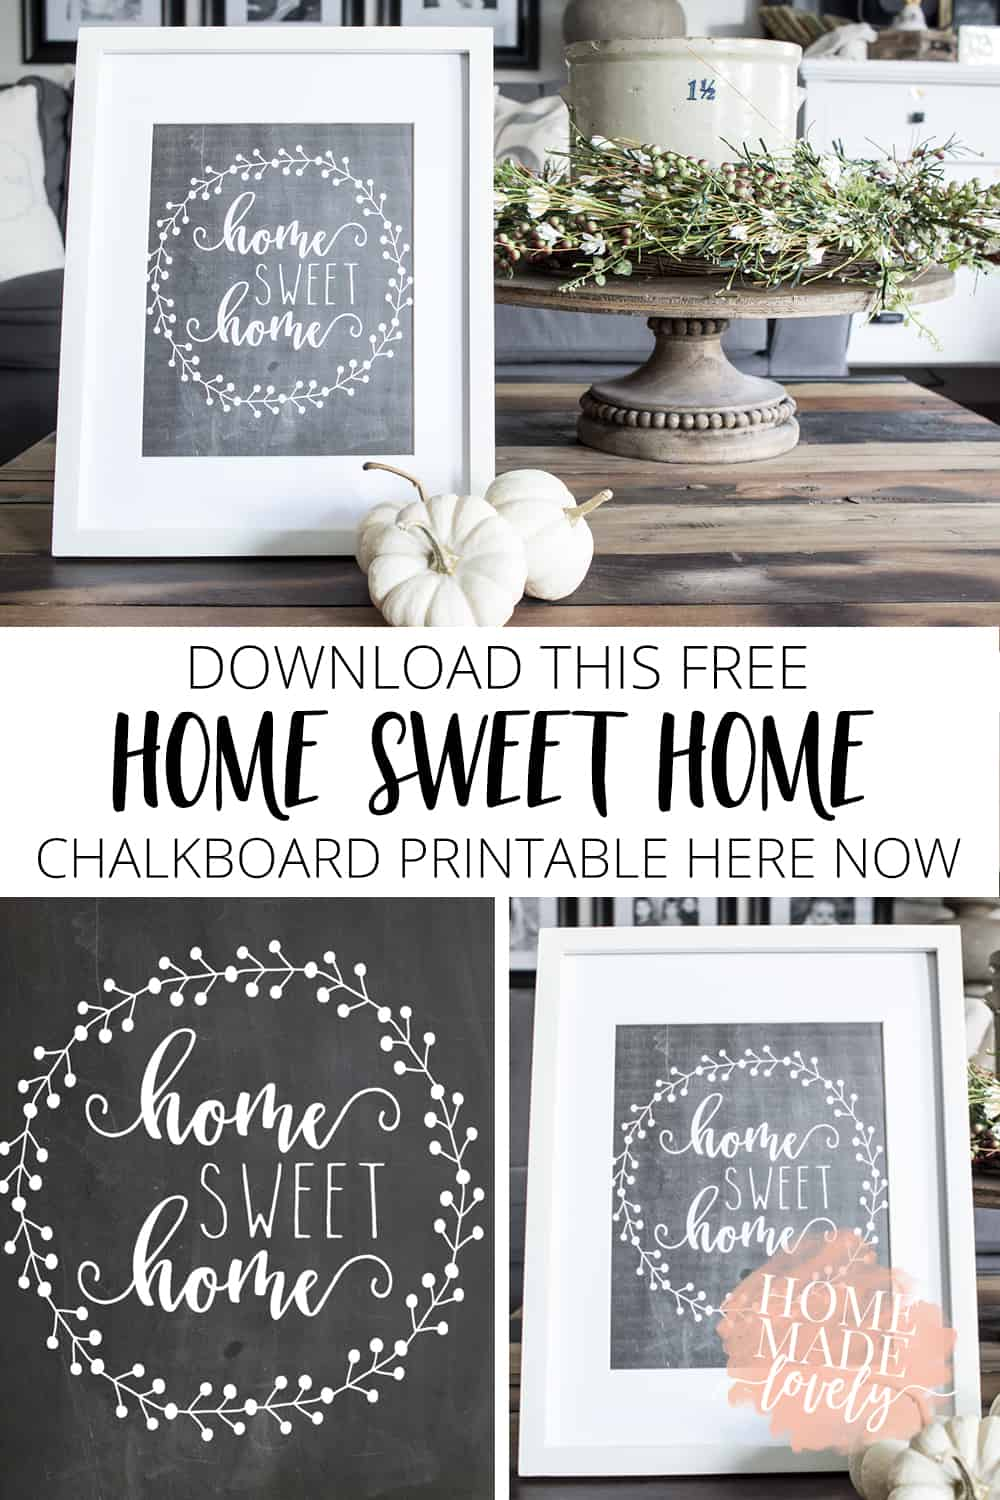 Home Sweet Home Free Chalkboard printable pin